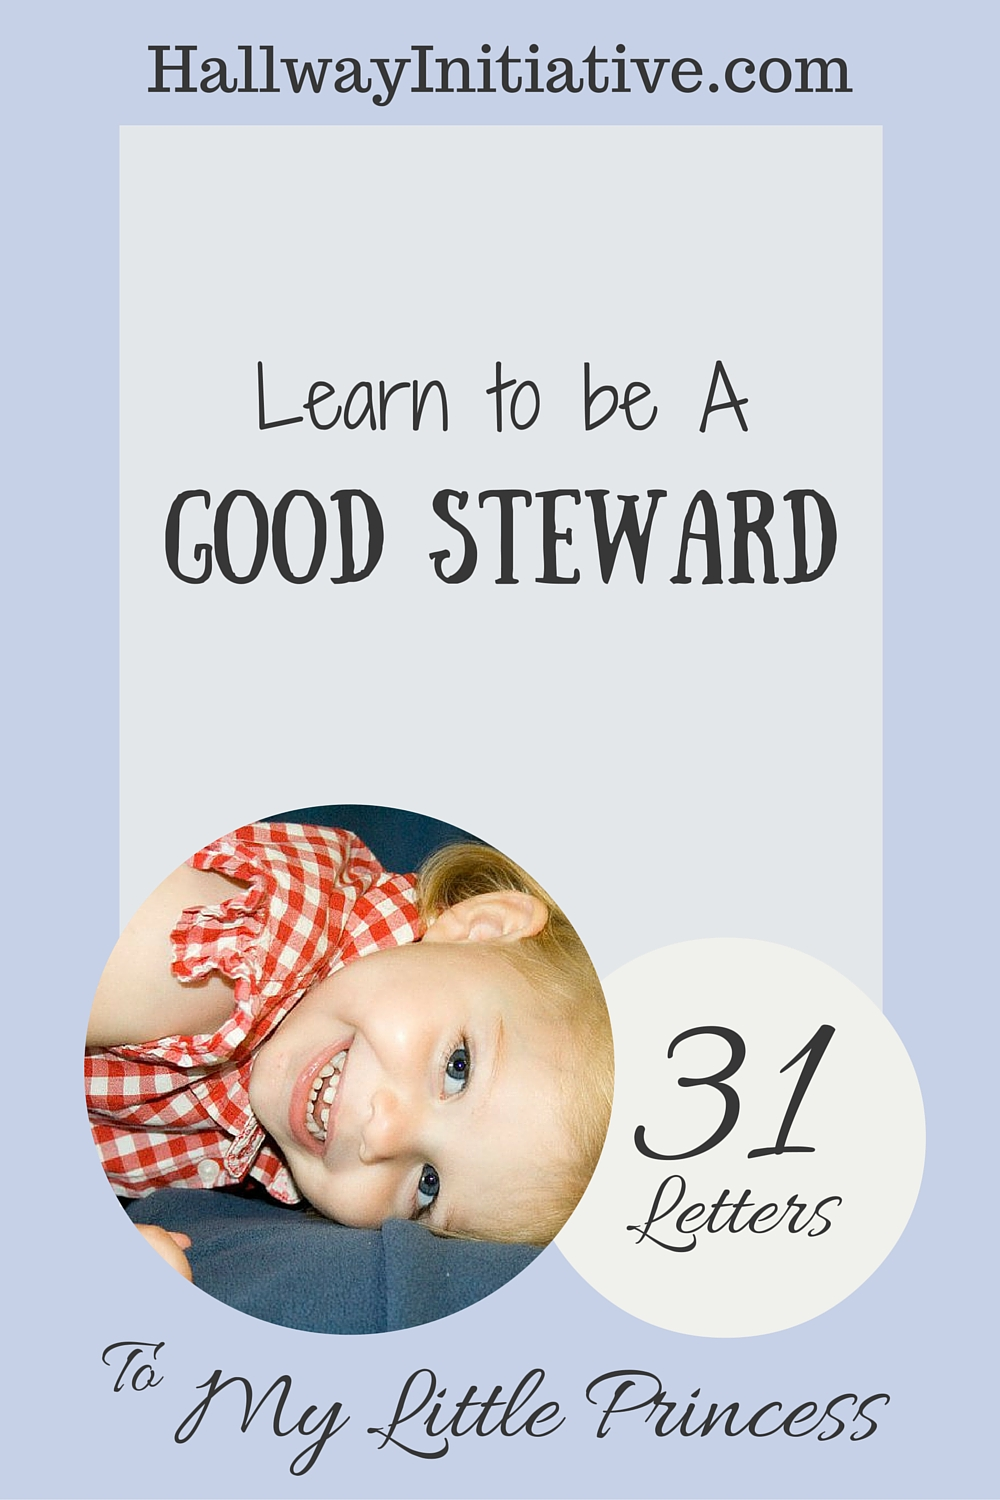 Learn to be a good steward